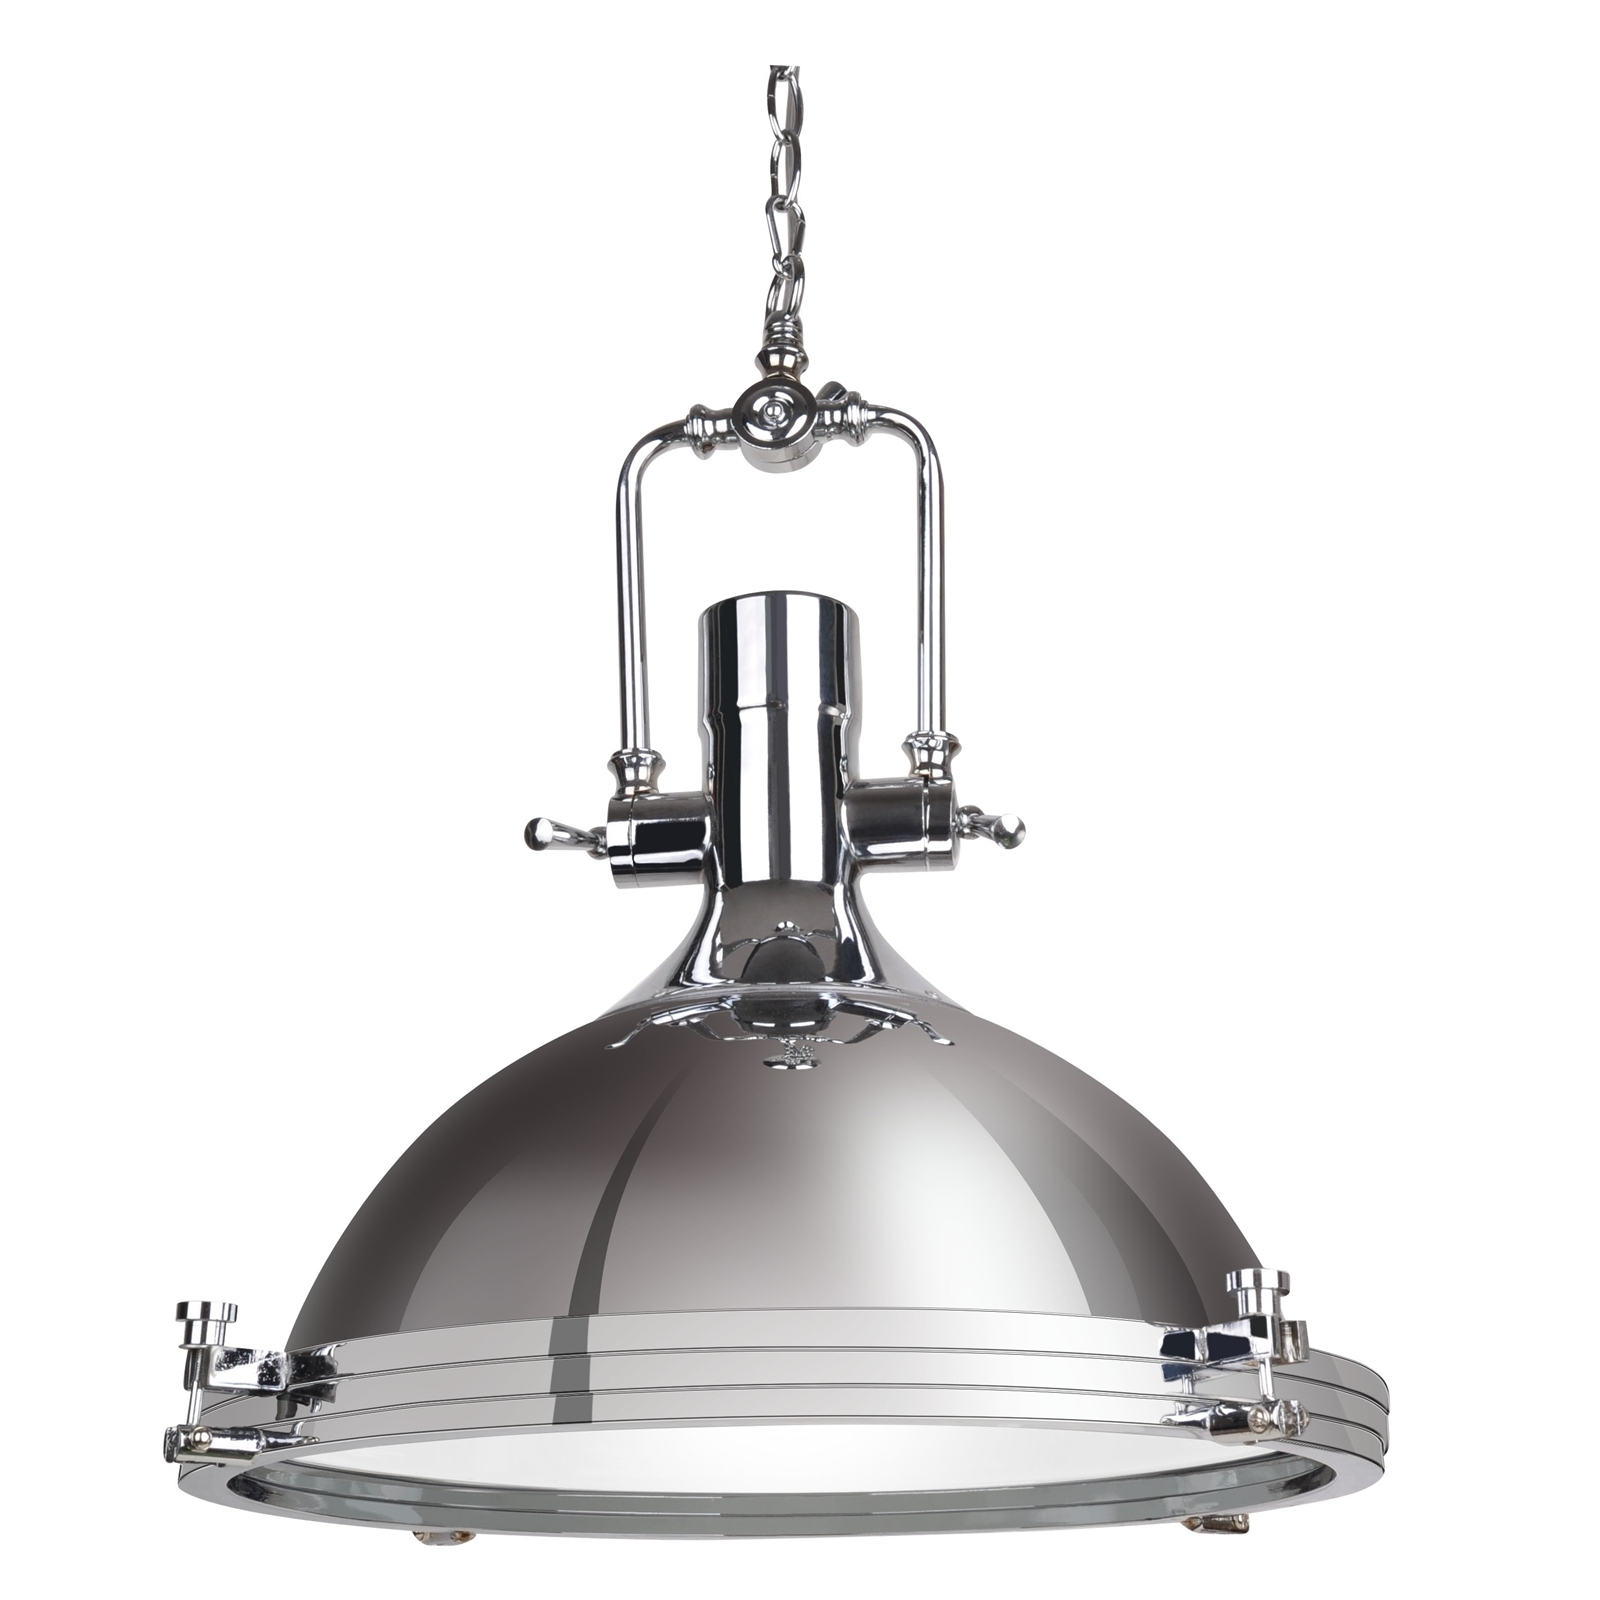 Find Cafe Lighting 40Cm 240V Turner Pendant Light – Chrome At Regarding Most Recently Released Outdoor Ceiling Lights At Bunnings (View 5 of 20)